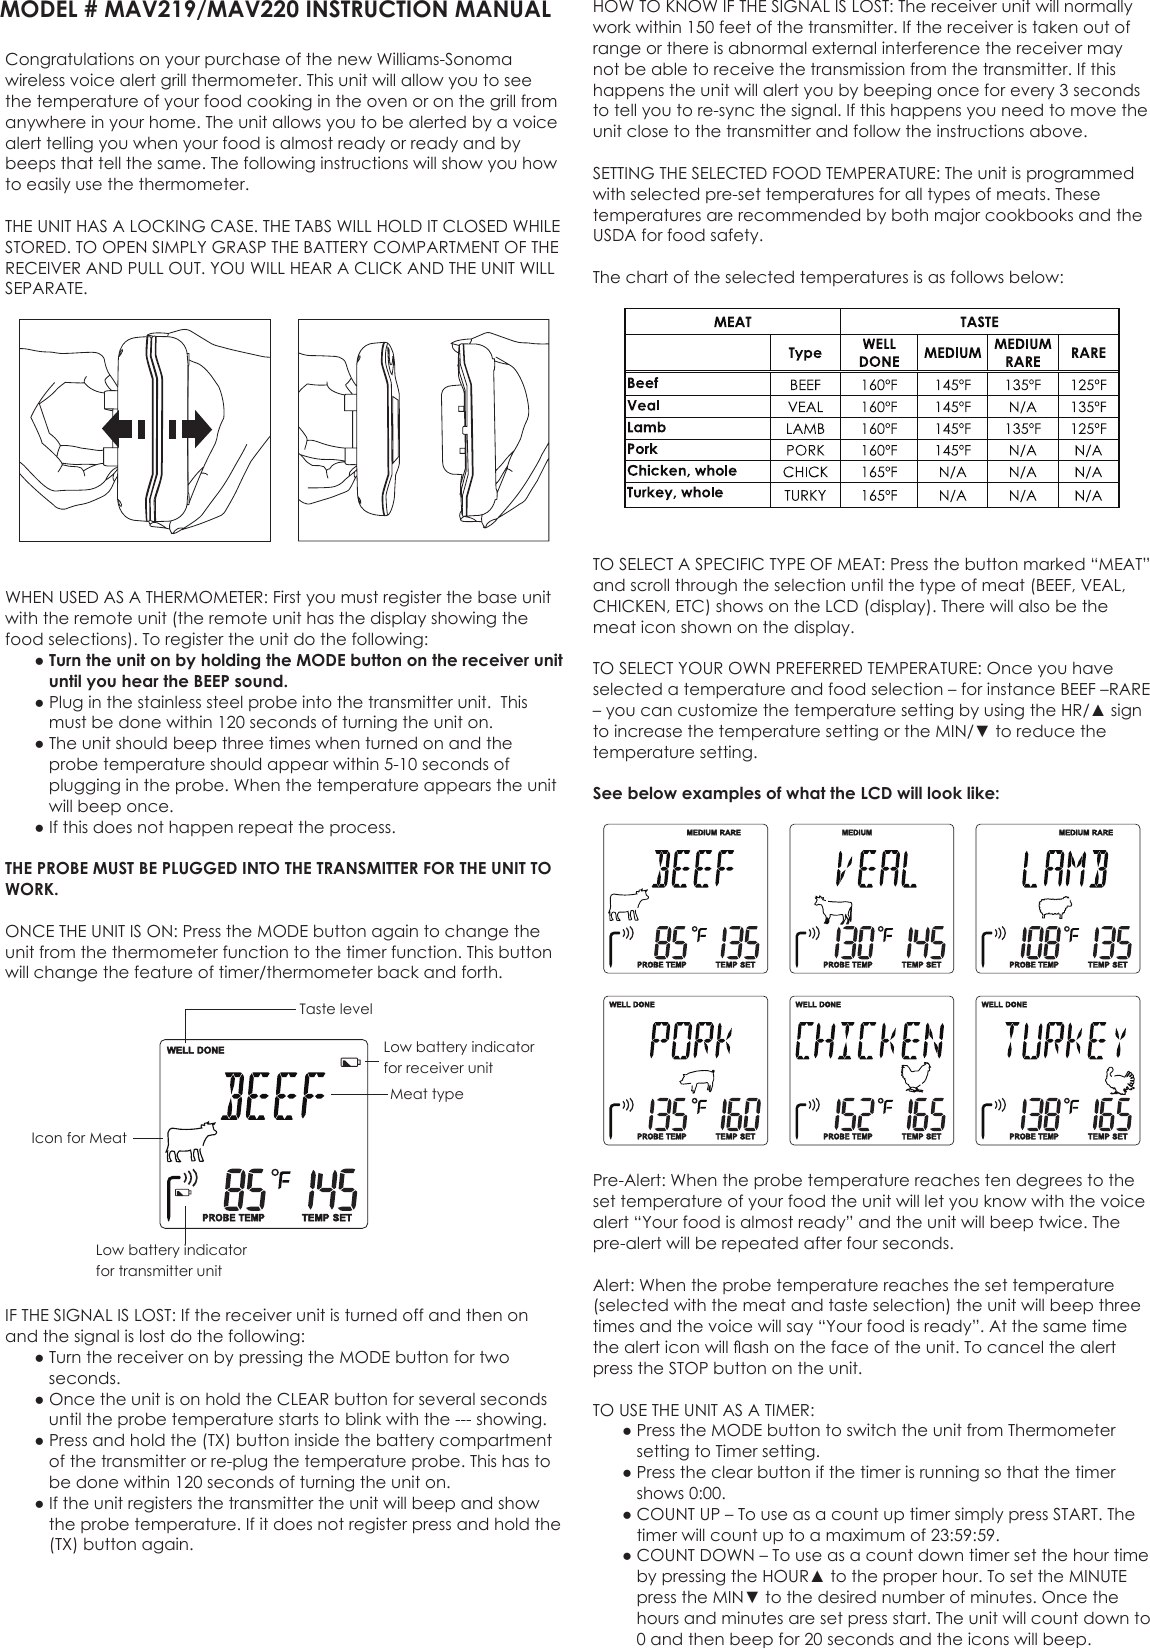 williams sonoma meat thermometer instructions